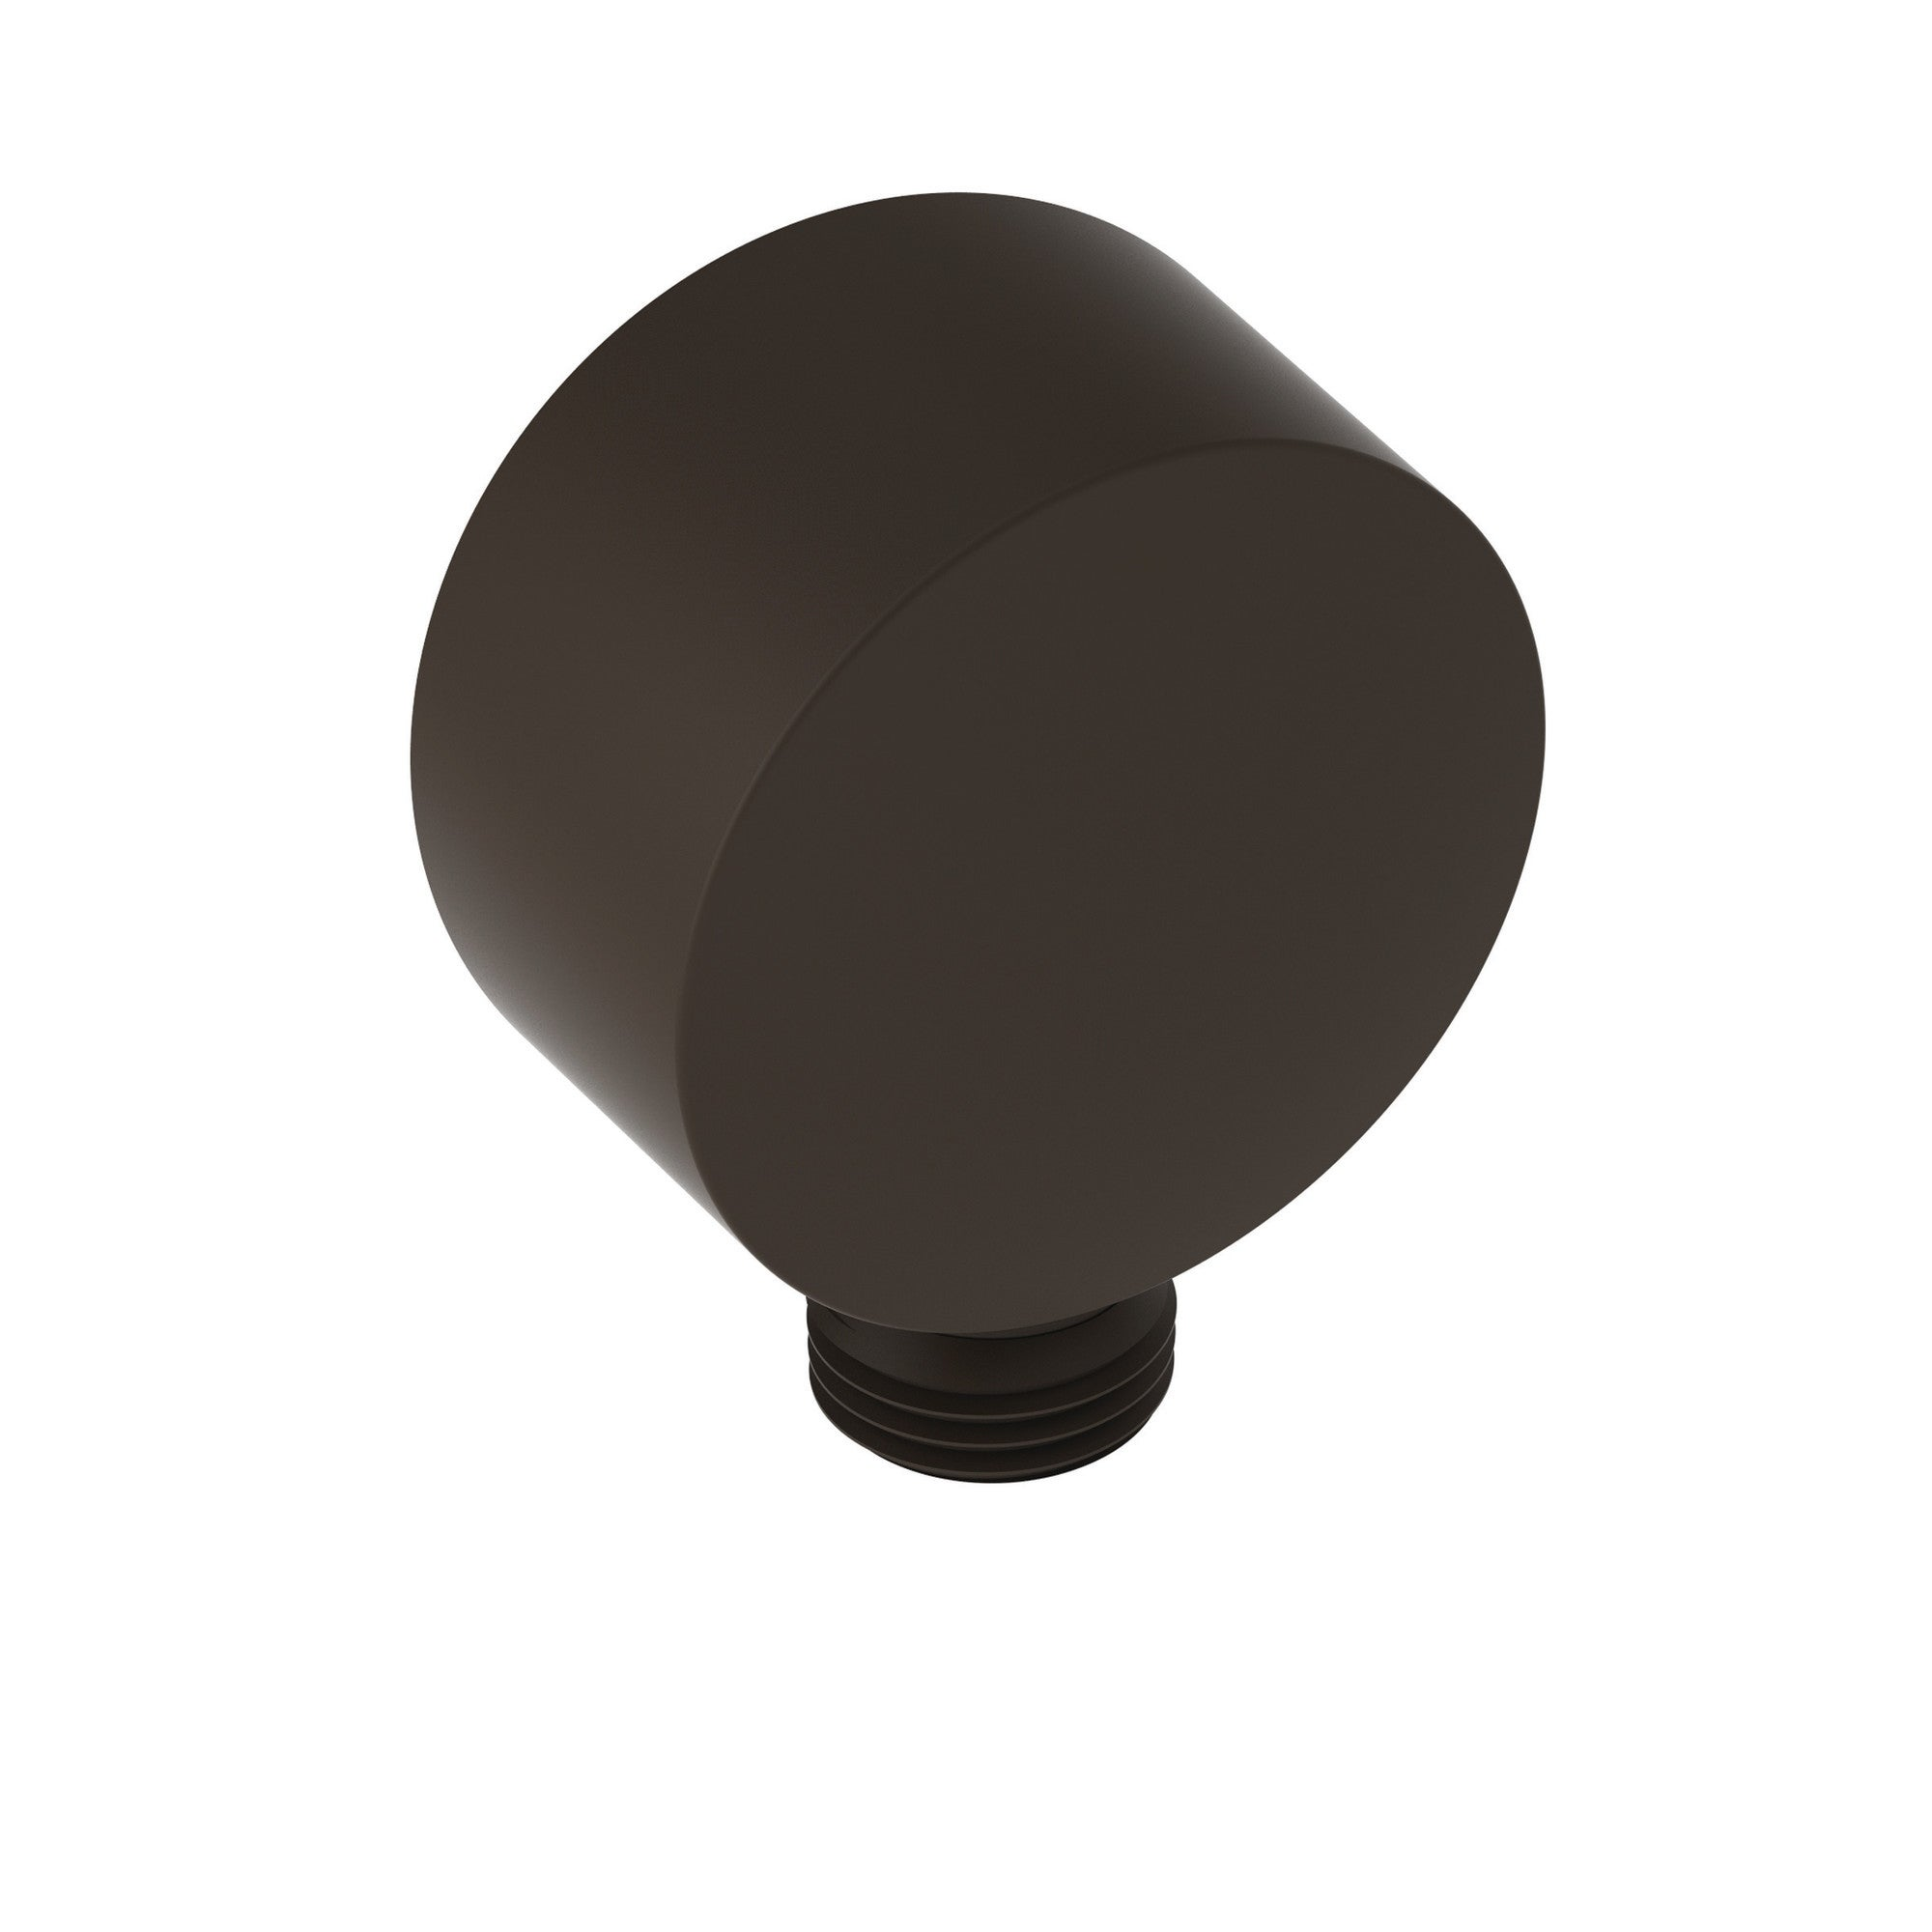 Newport Brass 285  Solid Brass Wall Mounted Supply Elbow for Hand Shower Hose (Oil Rubbed Bronze)